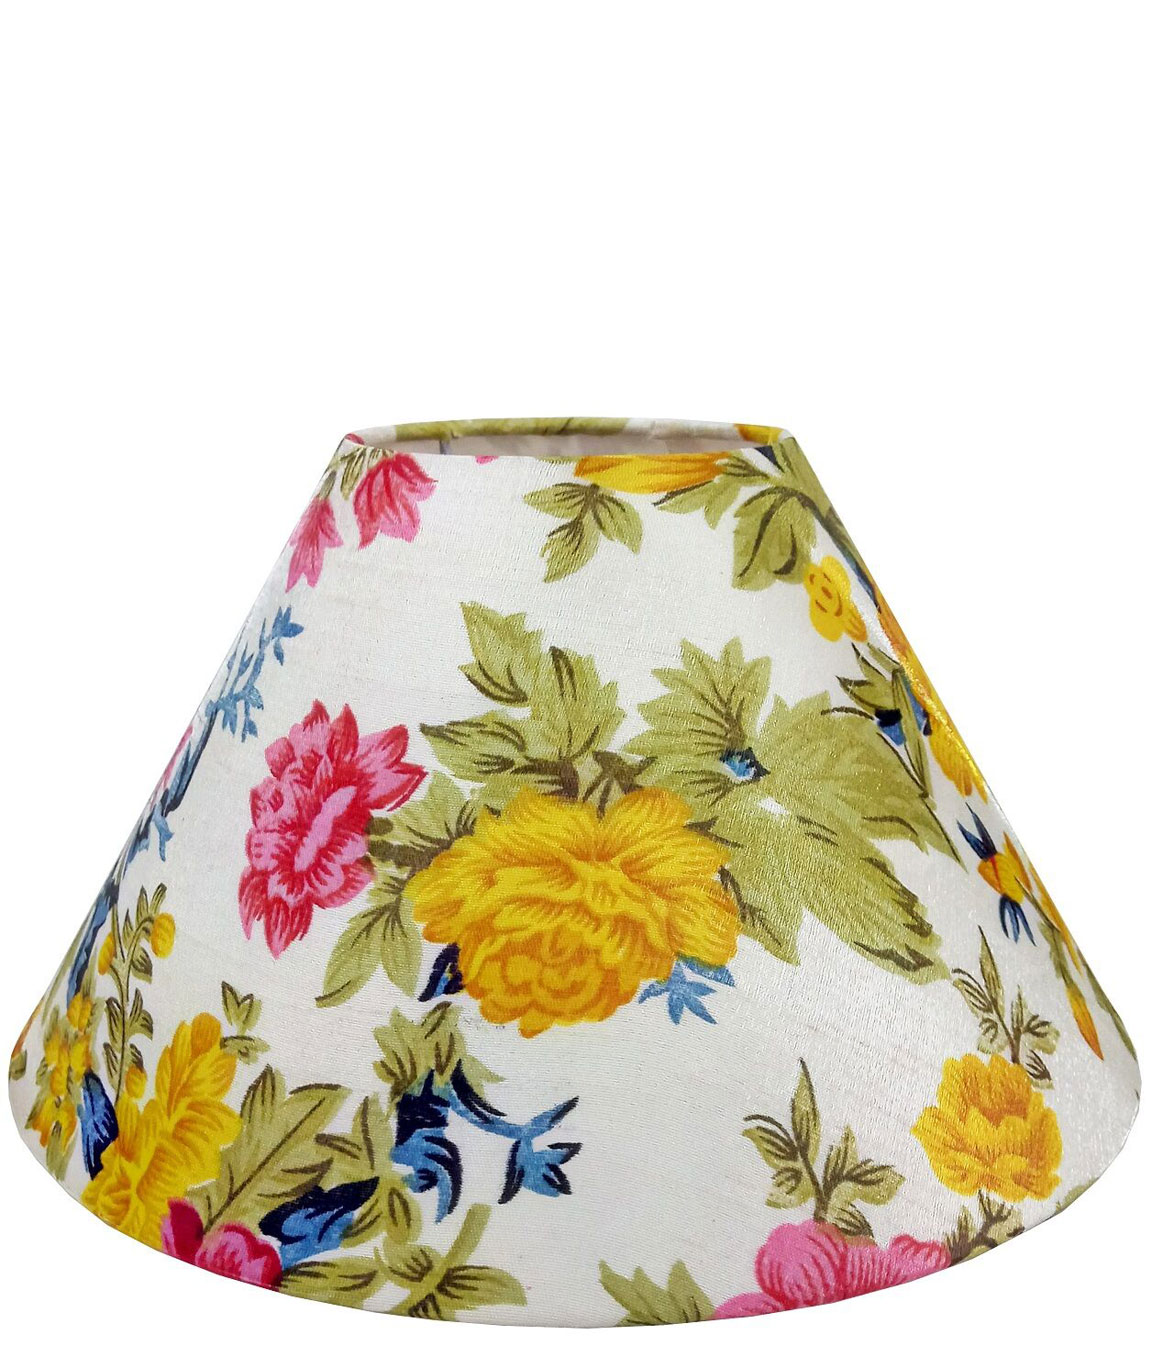 RDC 10 Inches Round Multicolour Floral Lamp Shade for Table Lamp